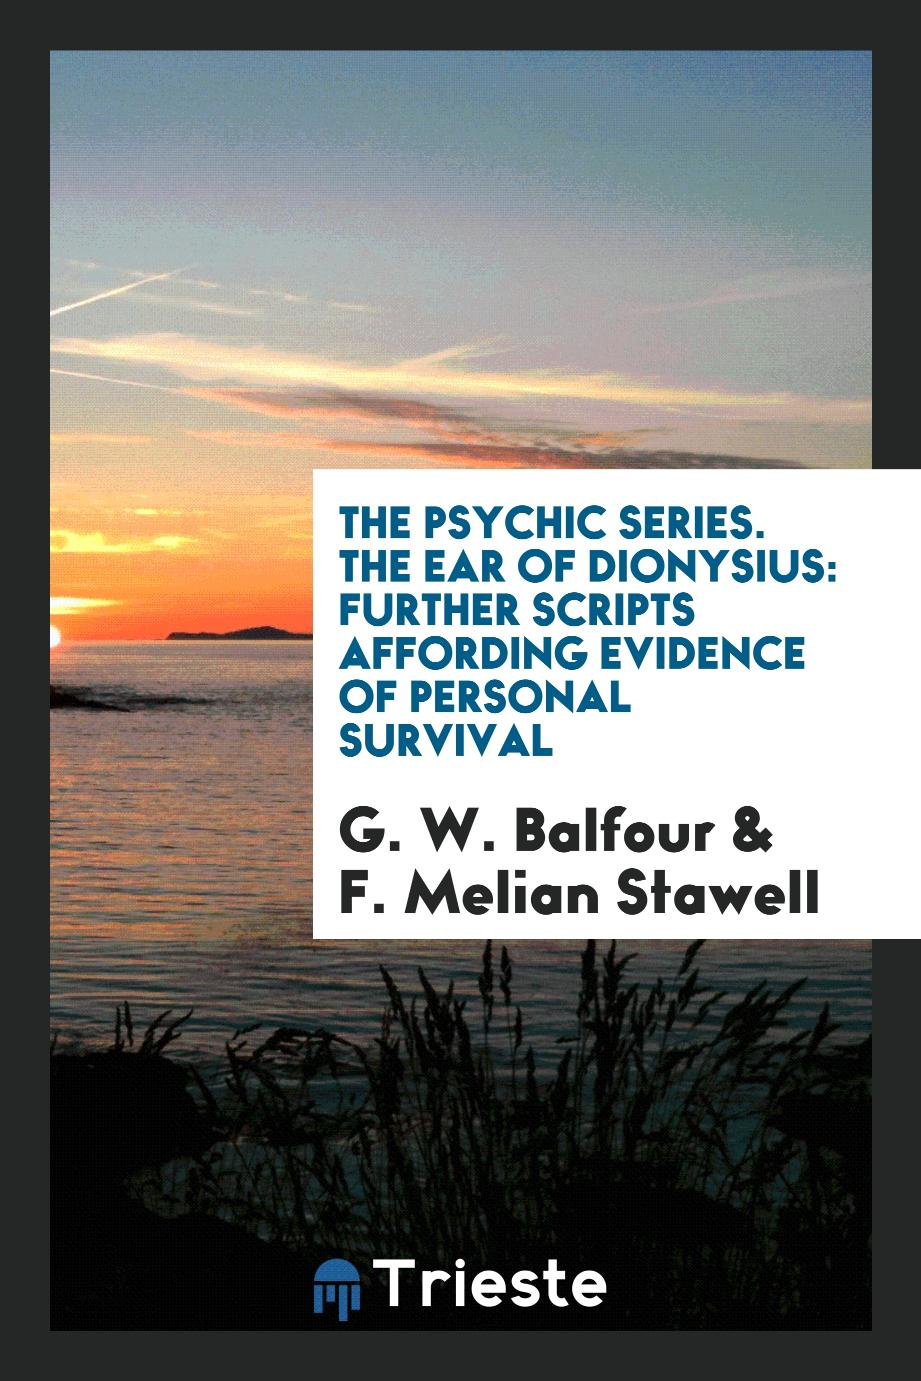 The Psychic Series. The Ear of Dionysius: Further Scripts Affording Evidence of Personal Survival